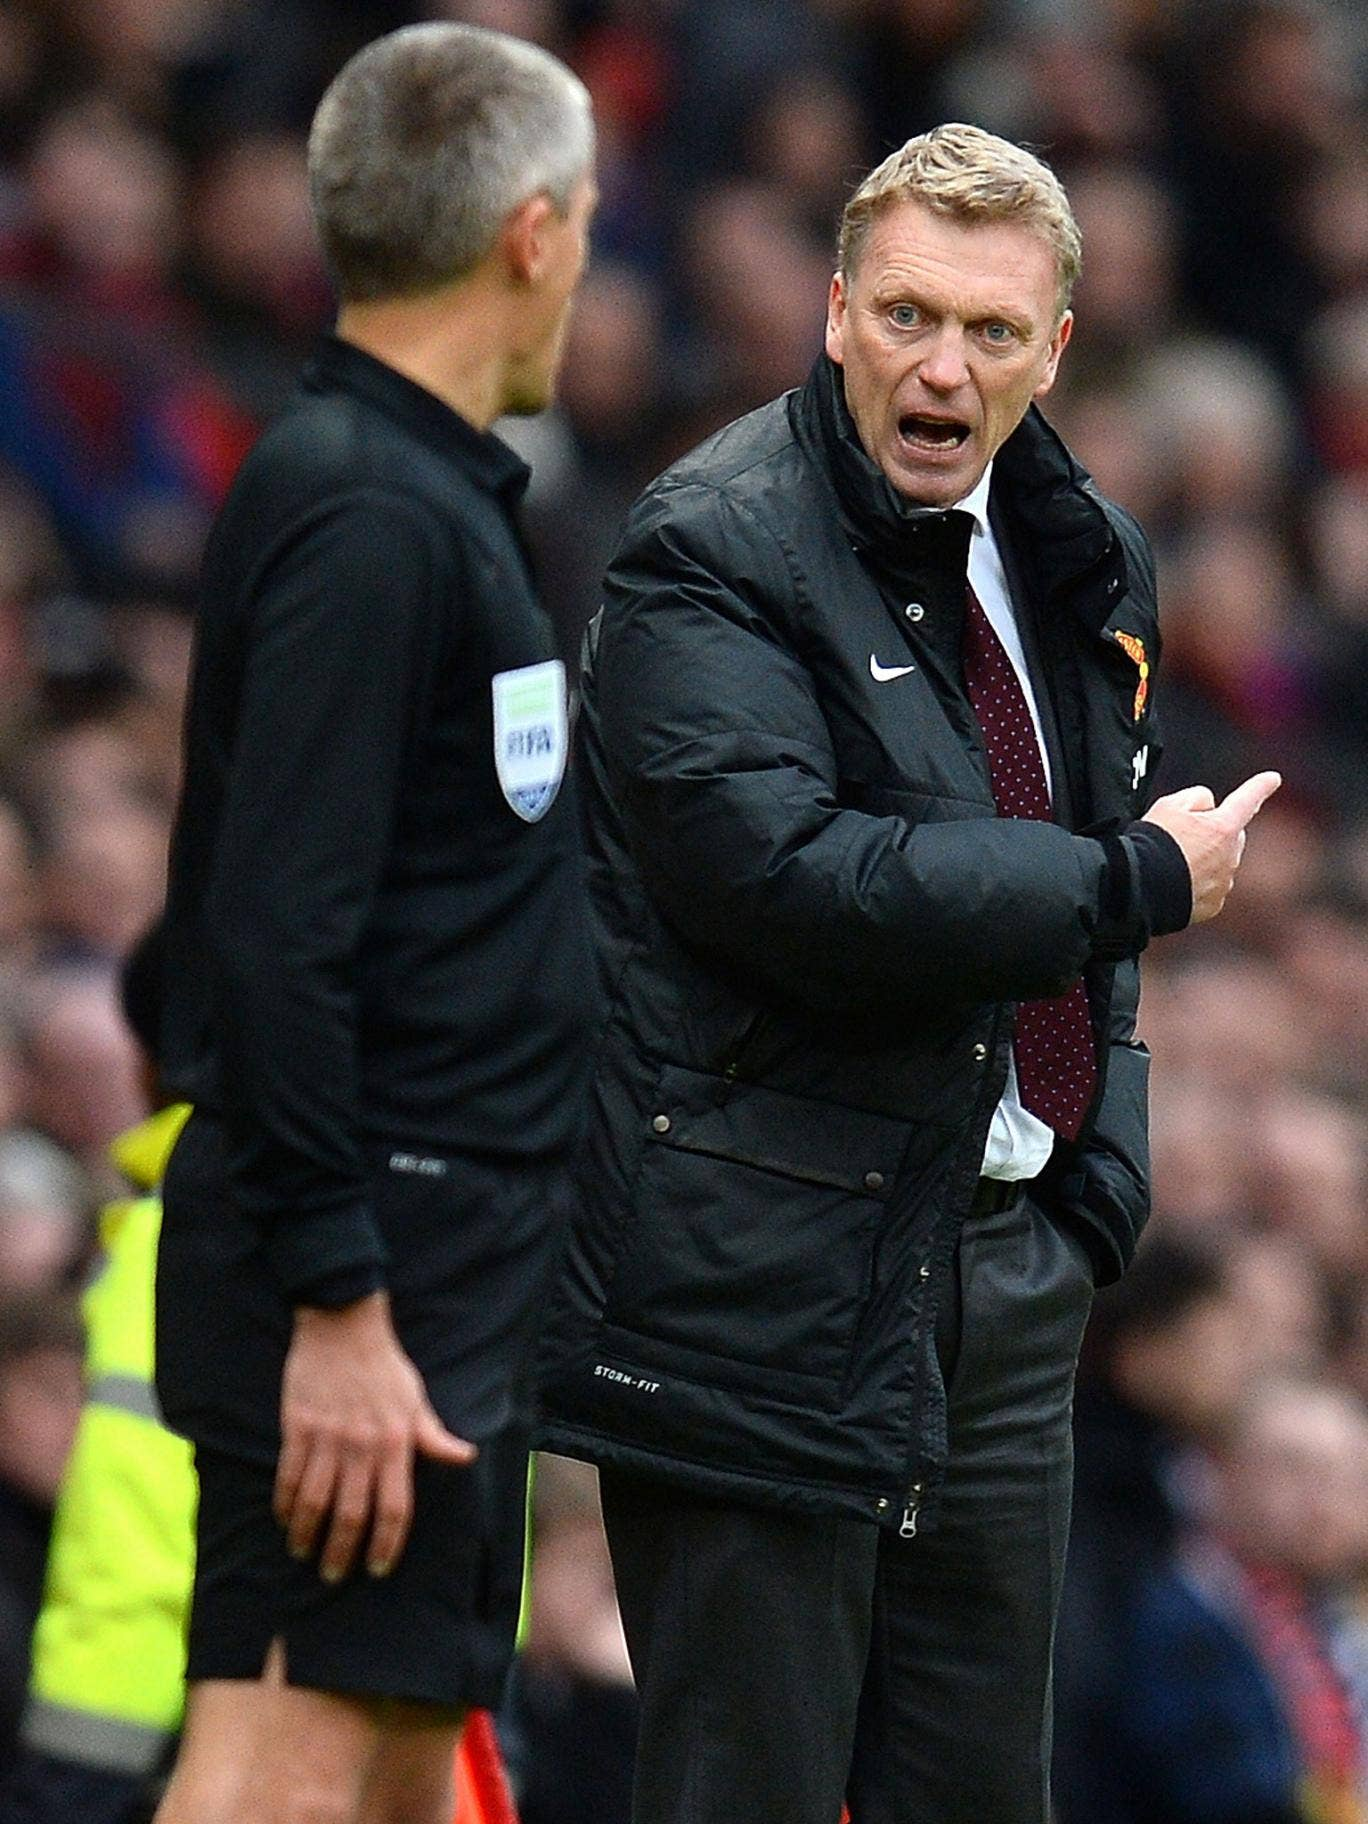 David Moyes' frustration with the United squad he inherited was apparent in defeat